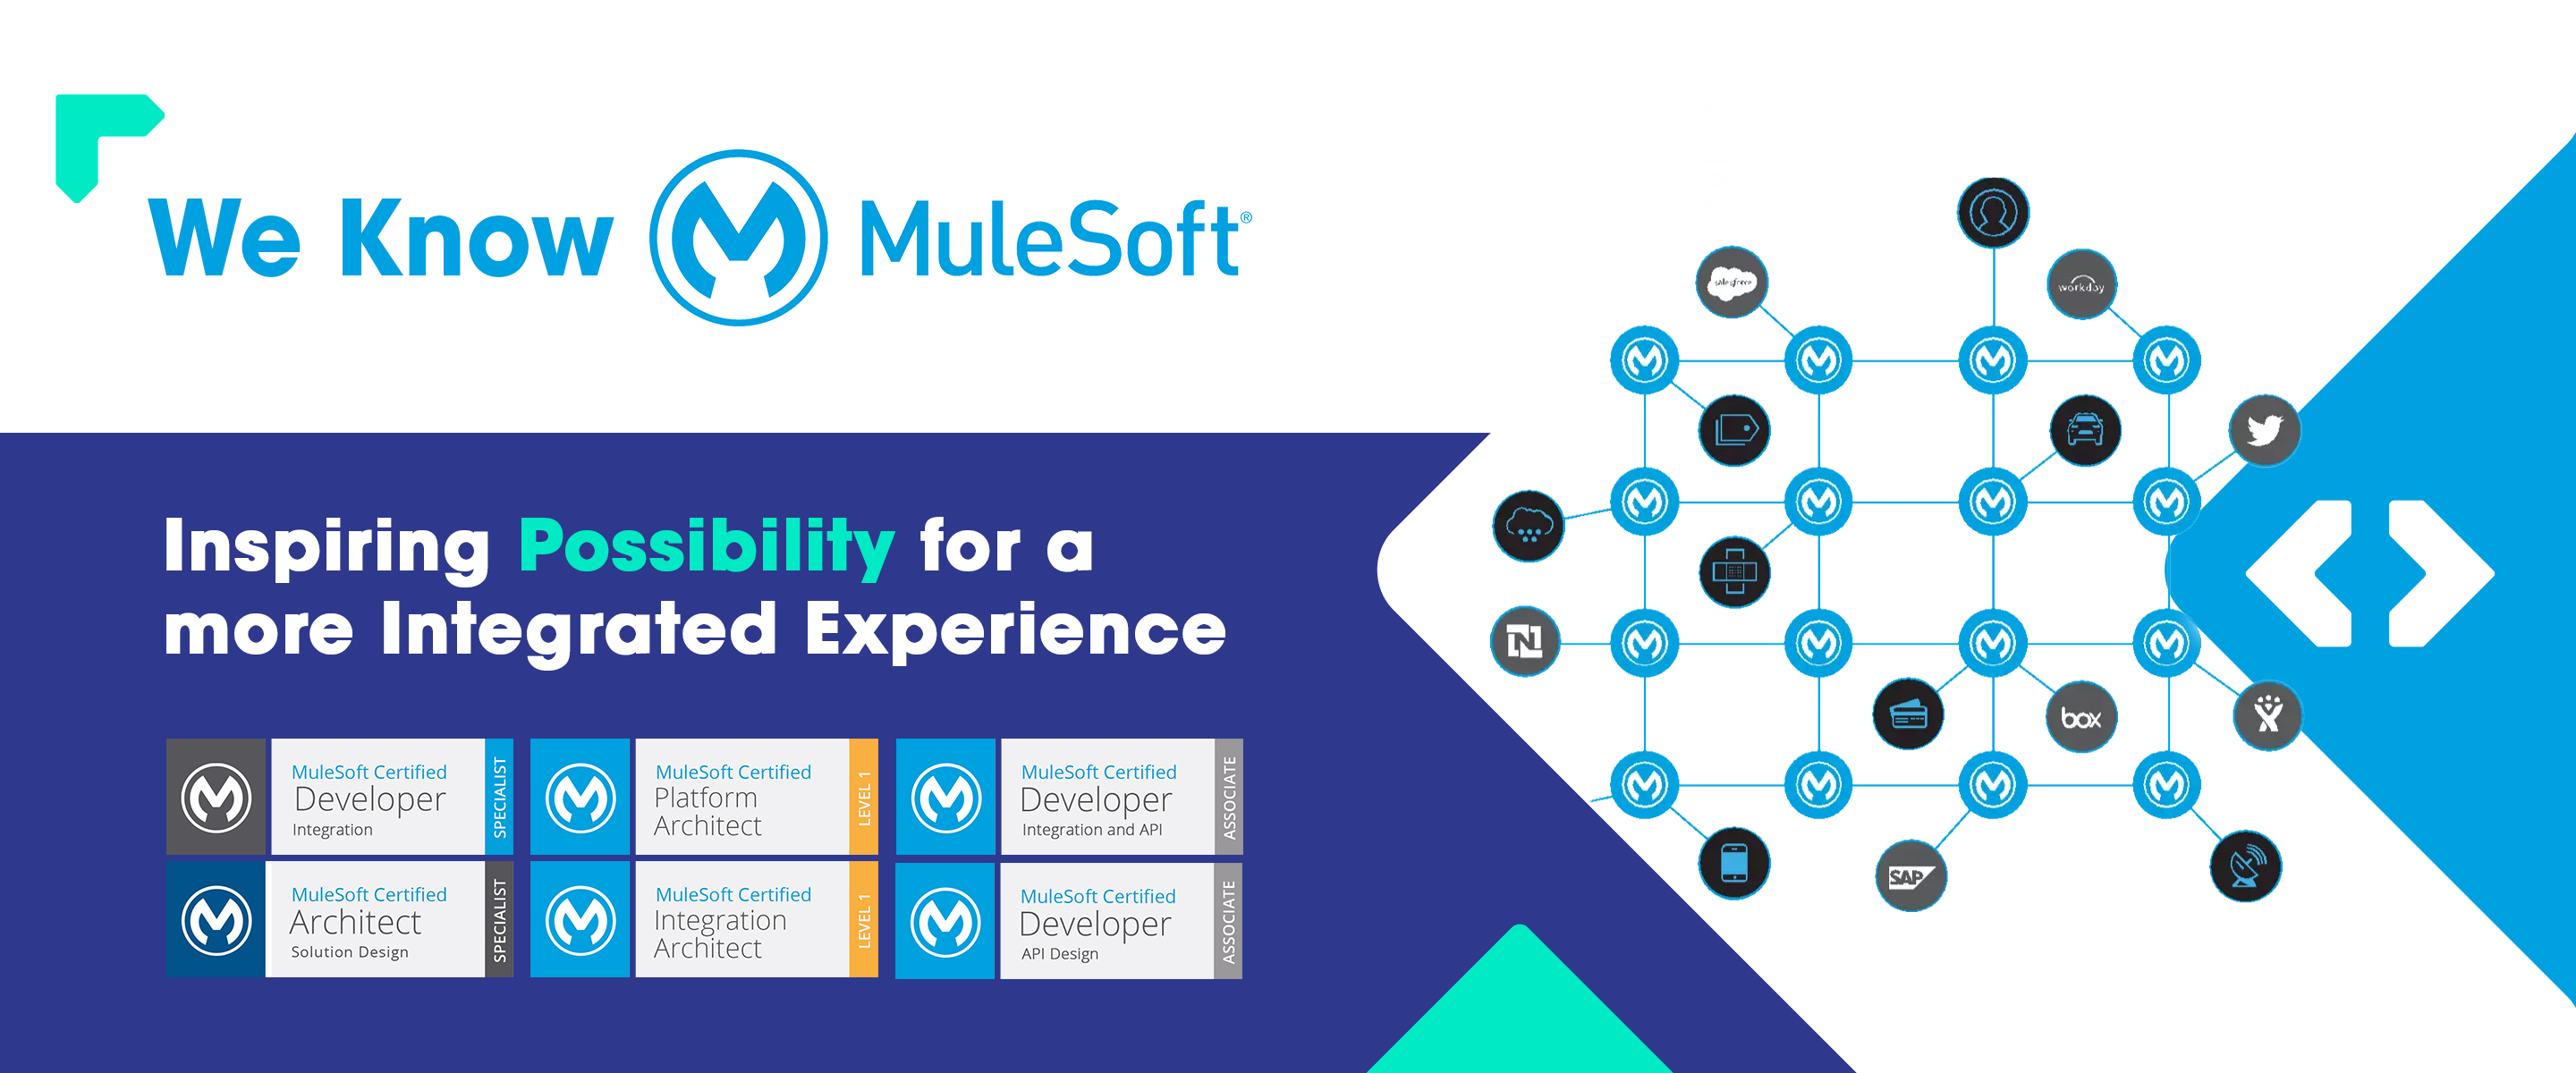 mulesoft experts, mulesoft expert